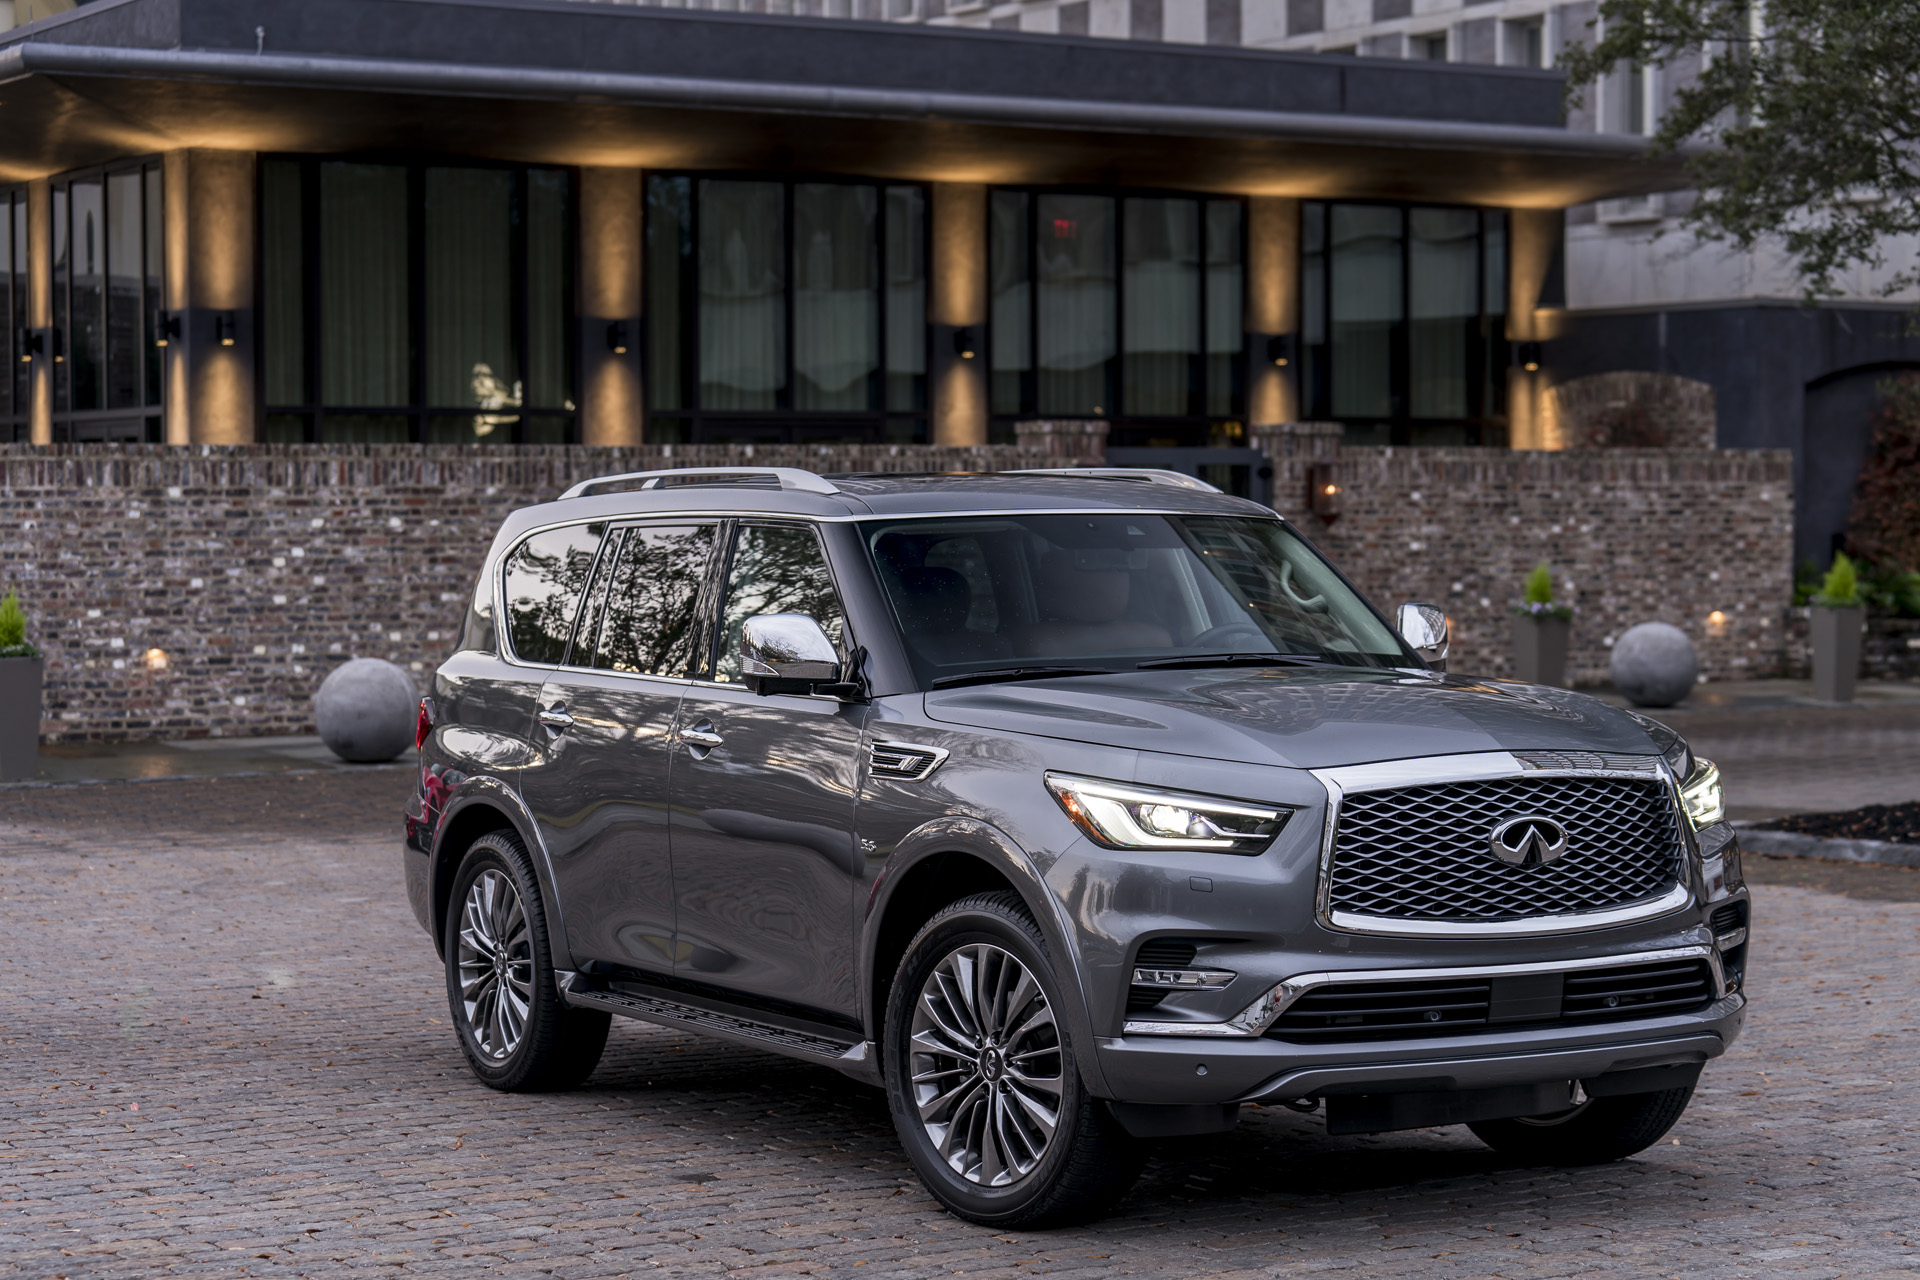 58 New 2020 Infiniti QX80 Reviews